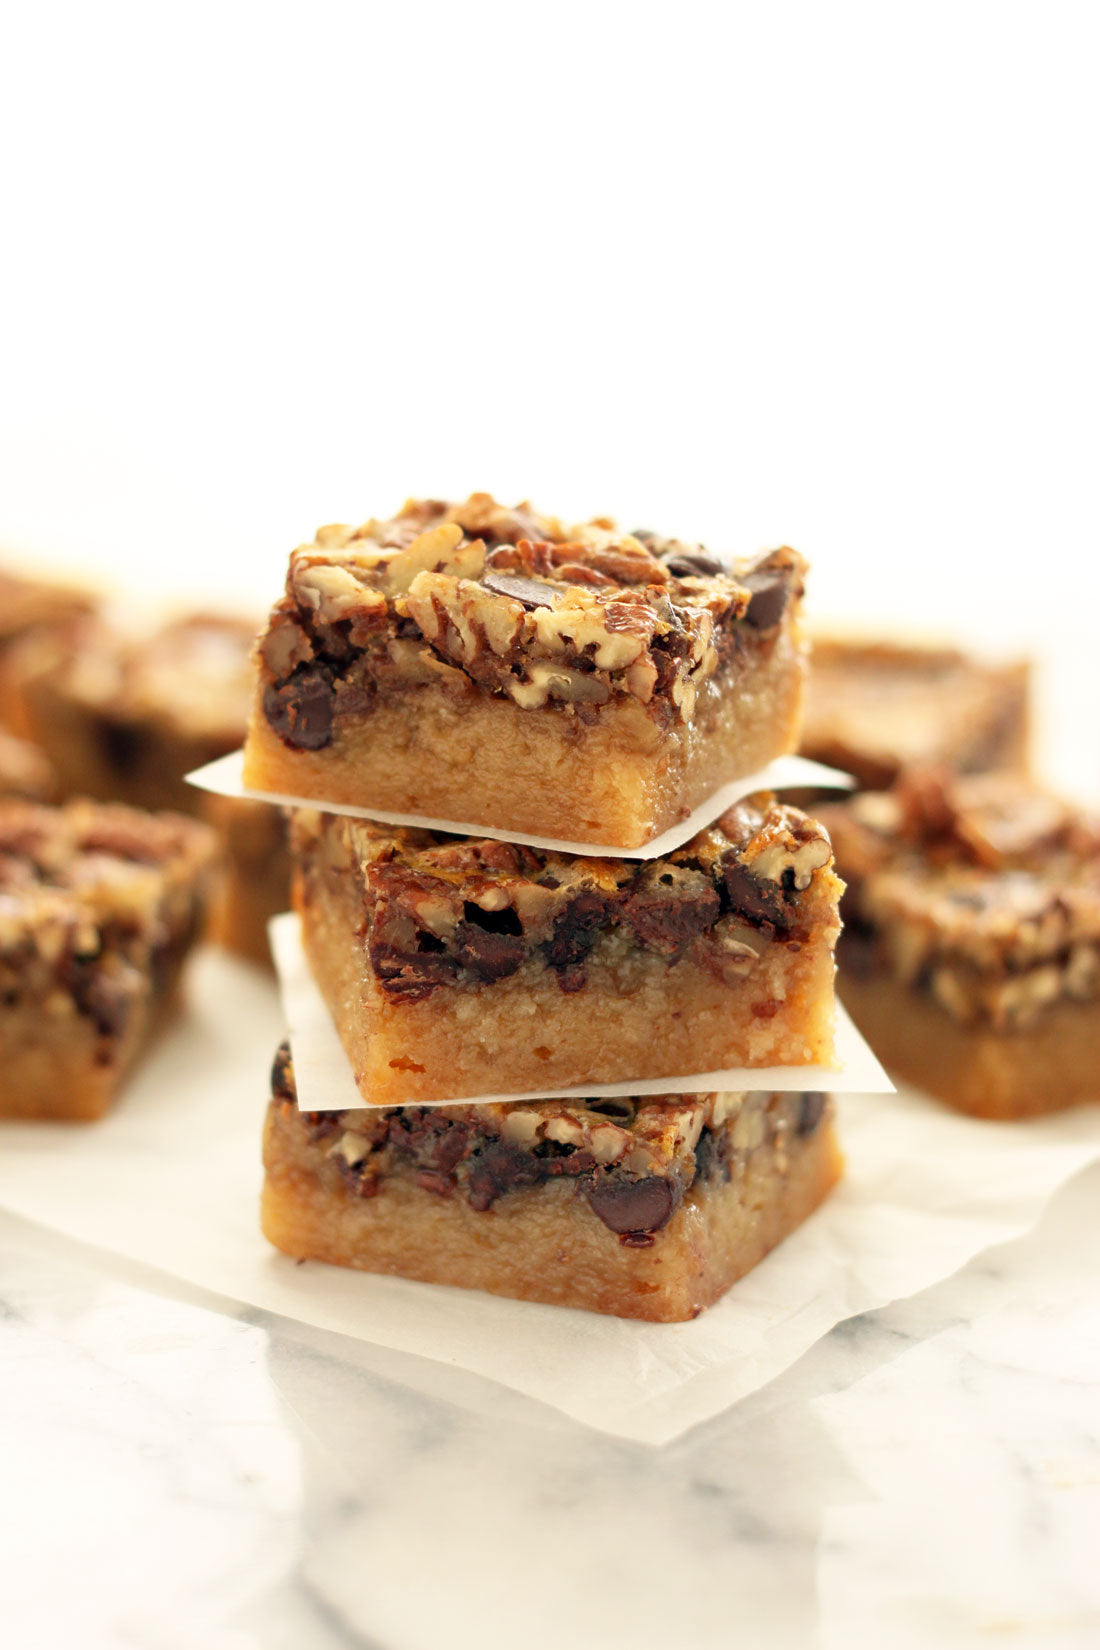 Image of three Miss Jones Baking Co Chocolate Pecan Pie Butter Bars stacked in front of other Miss Jones Baking Co Chocolate Pecan Pie Butter Bars